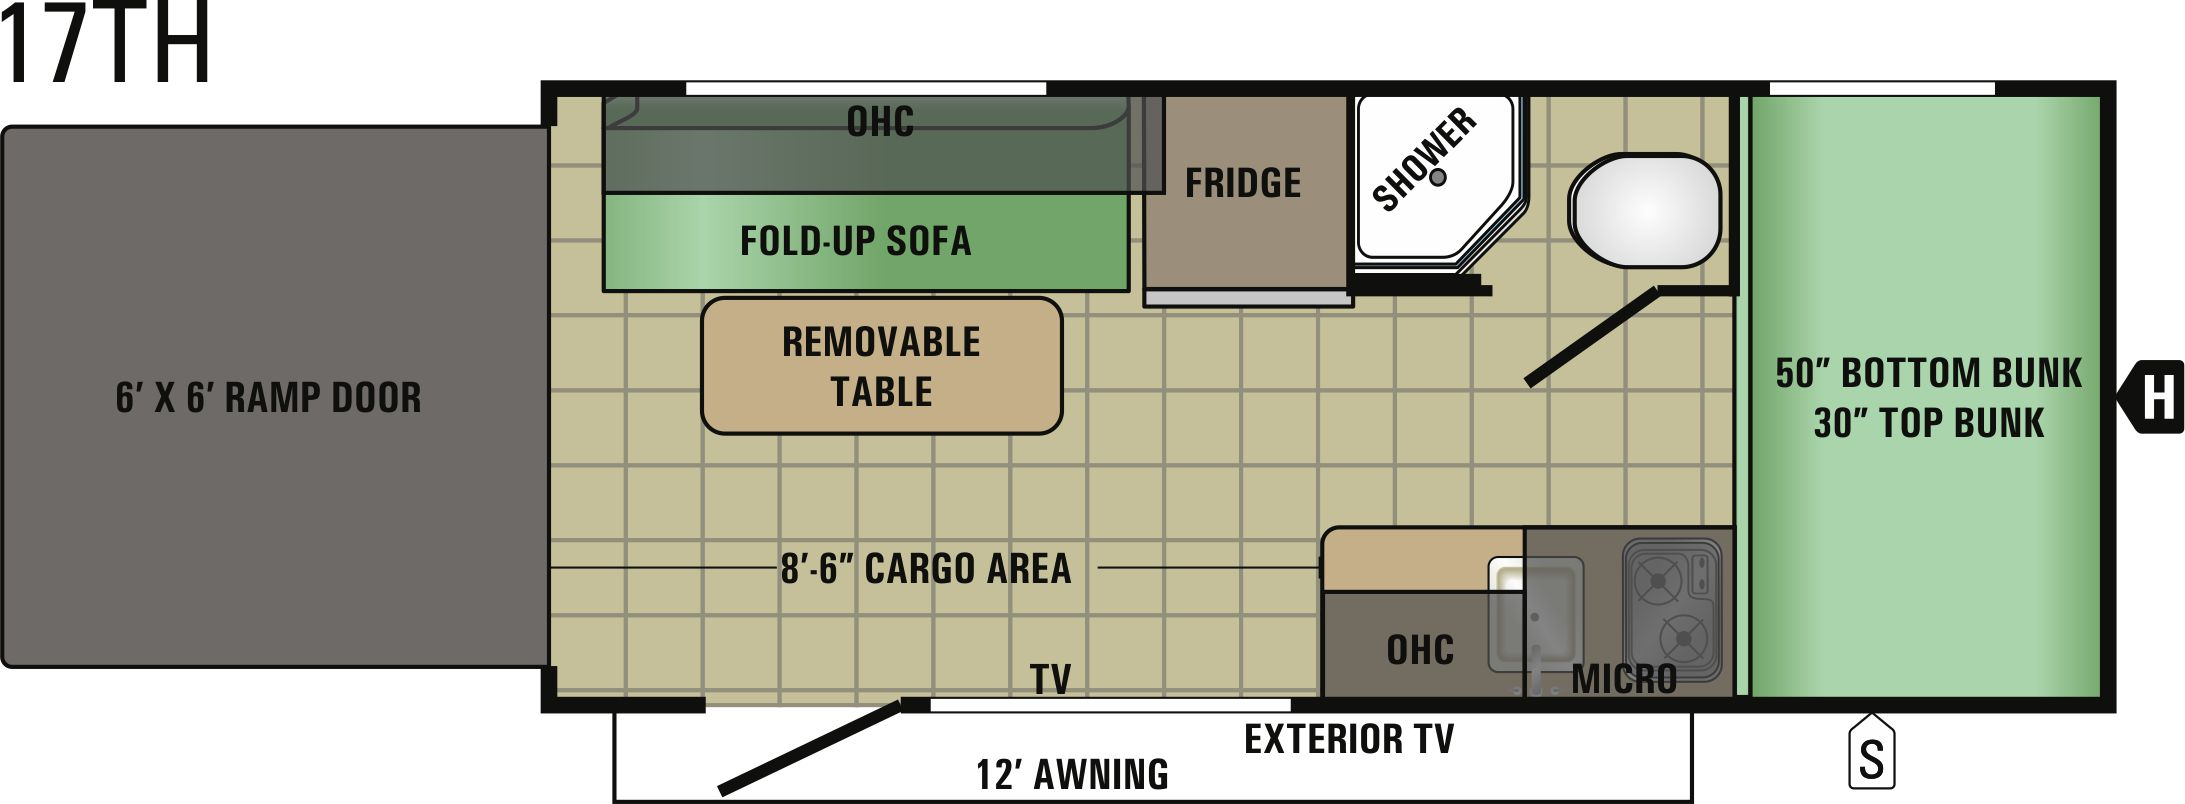 17TH Floorplan